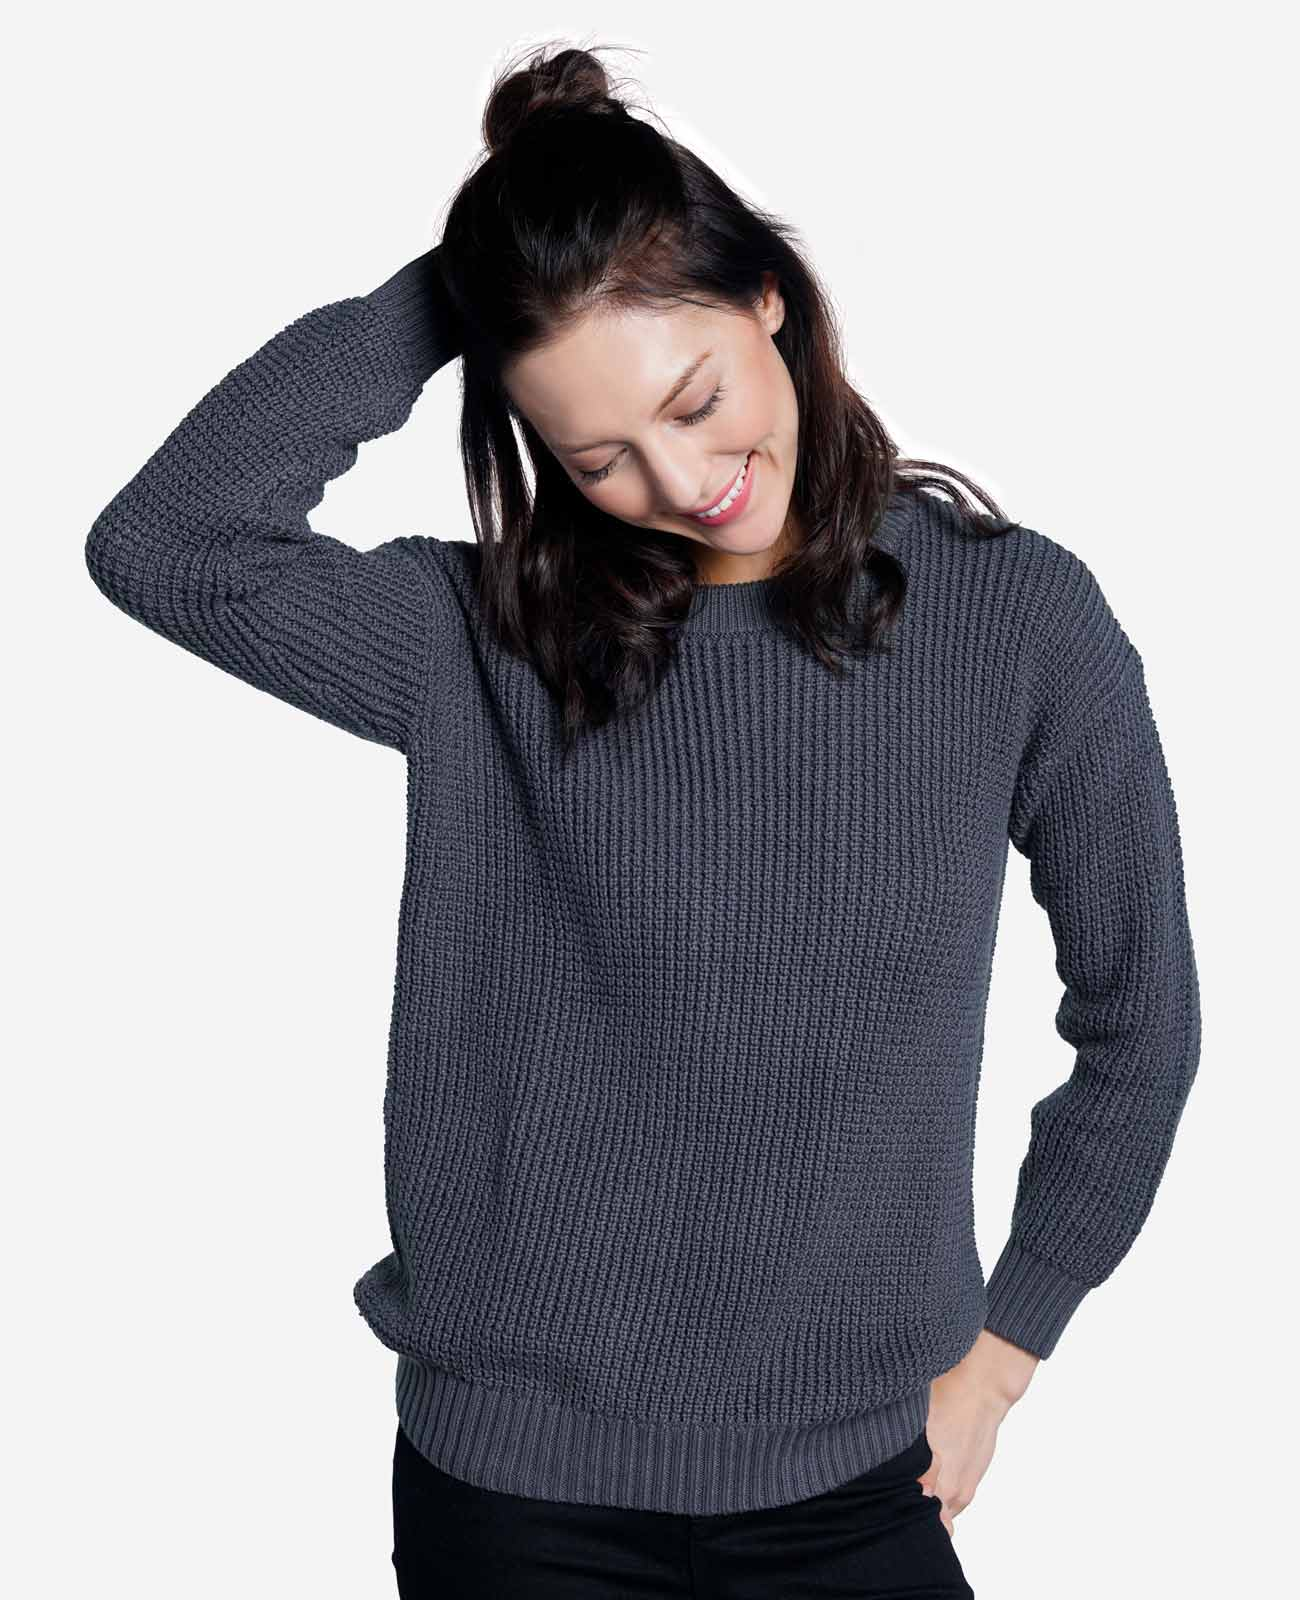 5 Must Have Pieces for a Minimalist Wardrobe